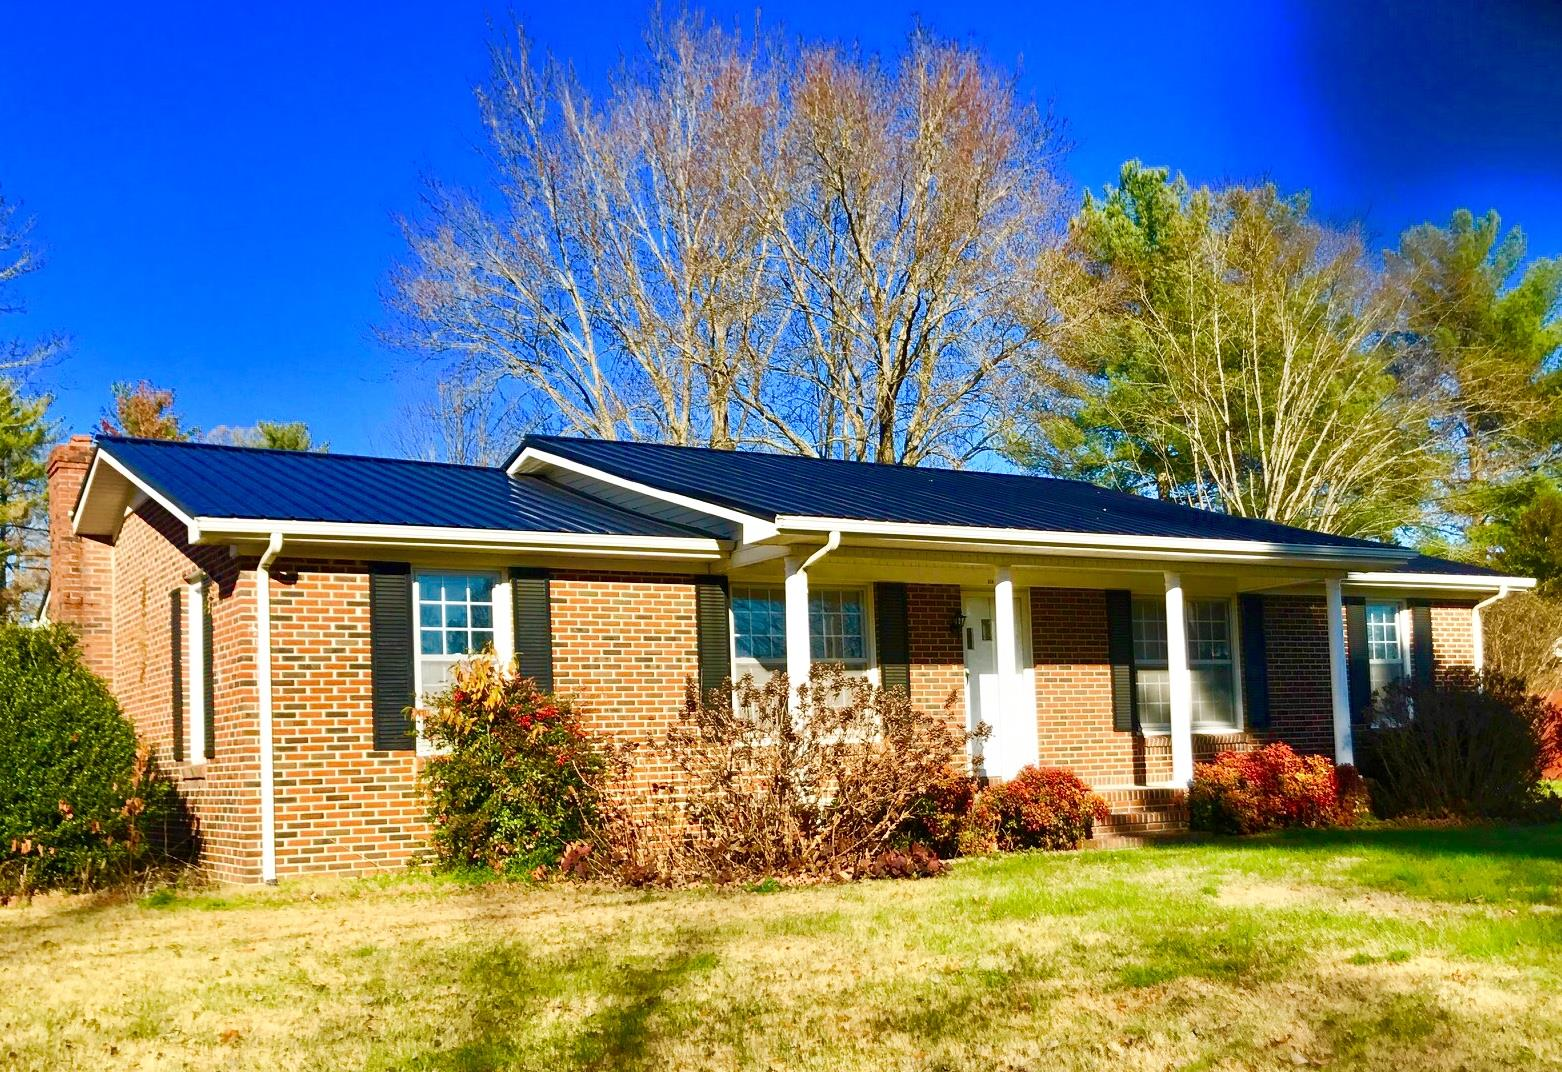 424 Lagoon Dr, McMinnville, TN 37110 - McMinnville, TN real estate listing